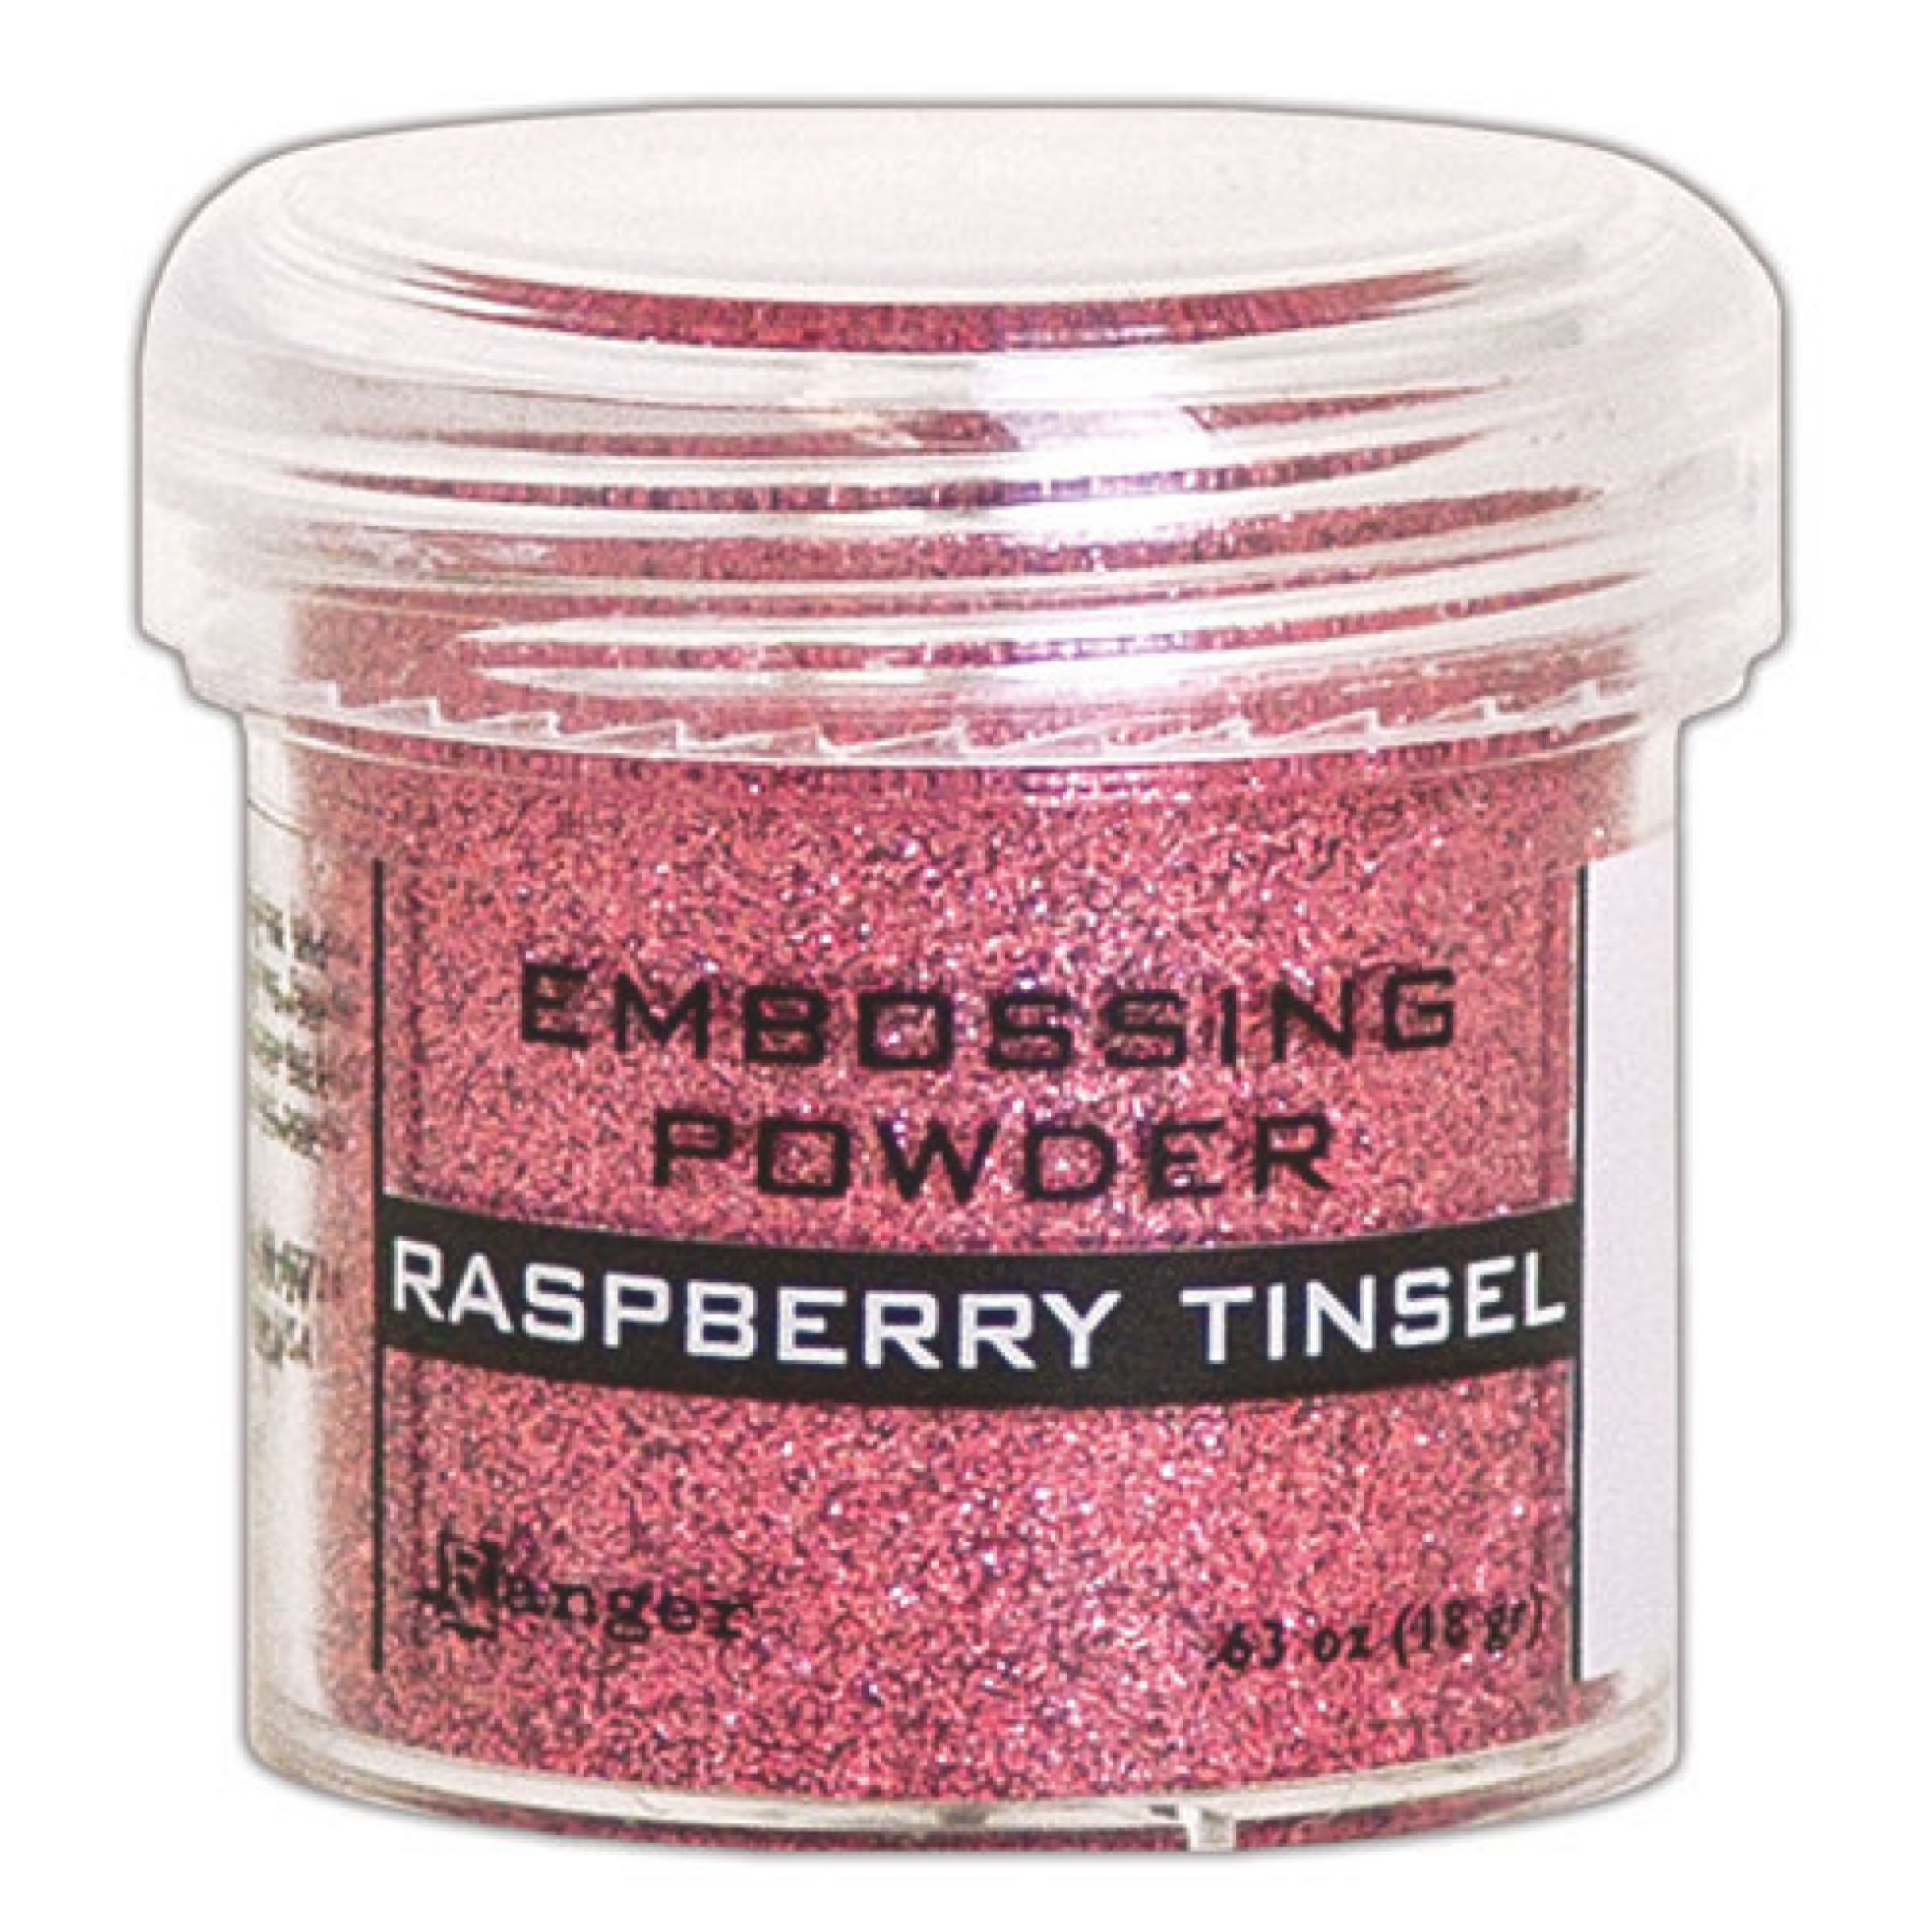 Ranger Embossing Powder- Raspberry Tinsel